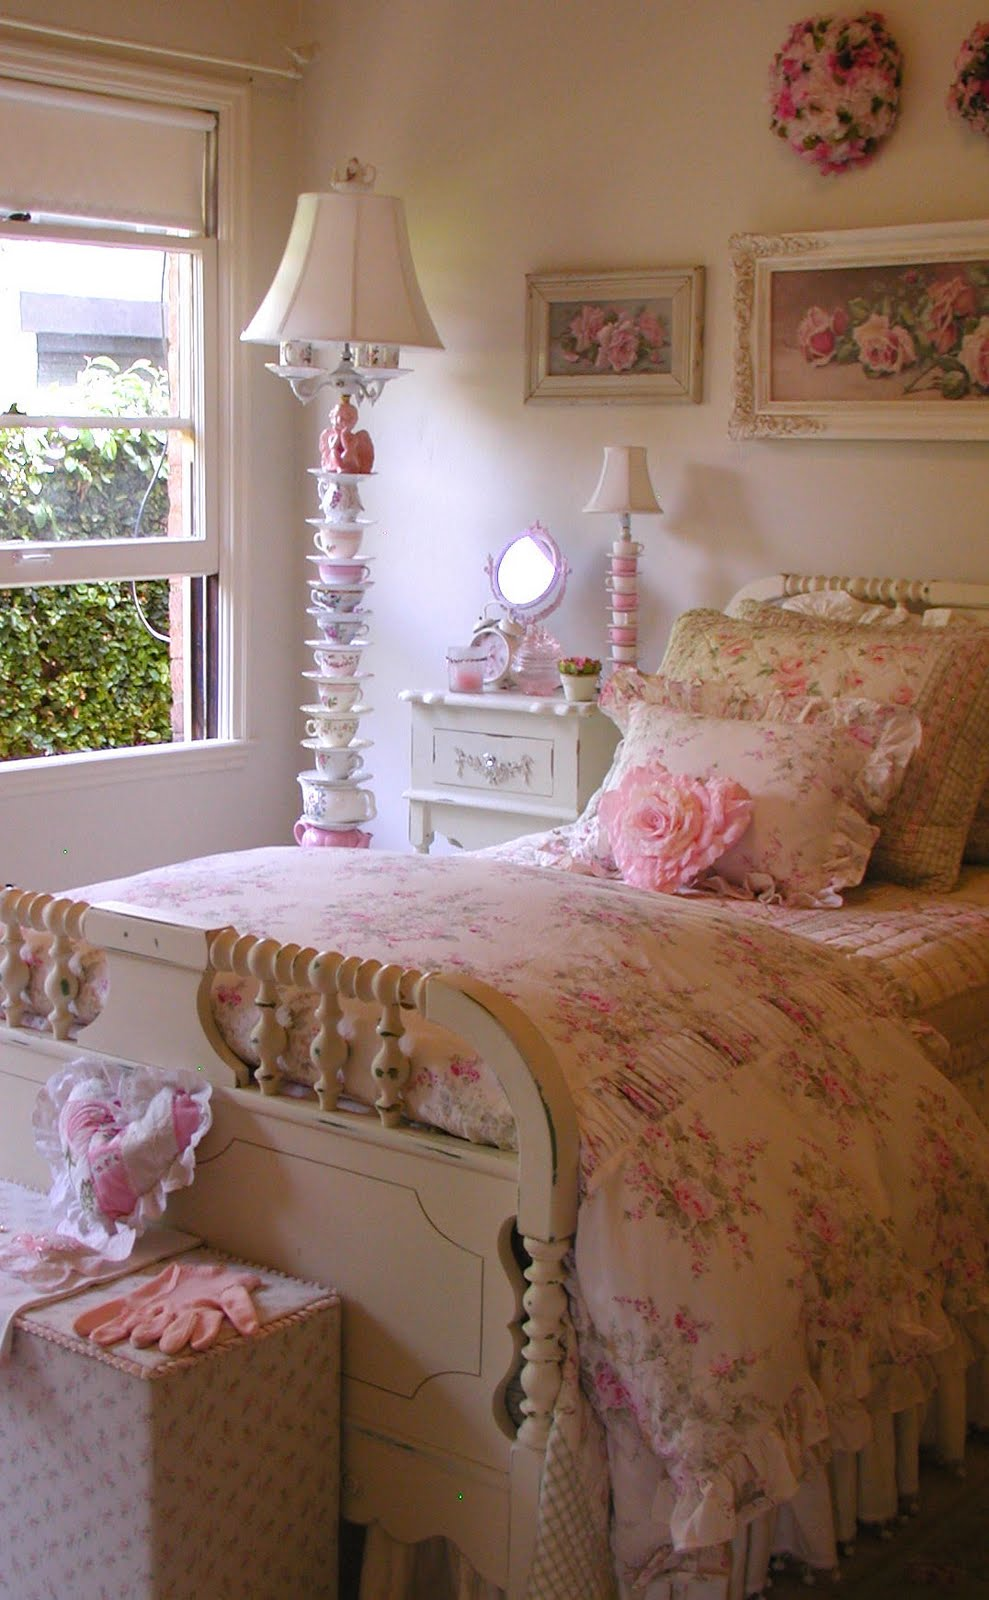 Chateau de fleurs english cottage romance for Cottage bedroom ideas